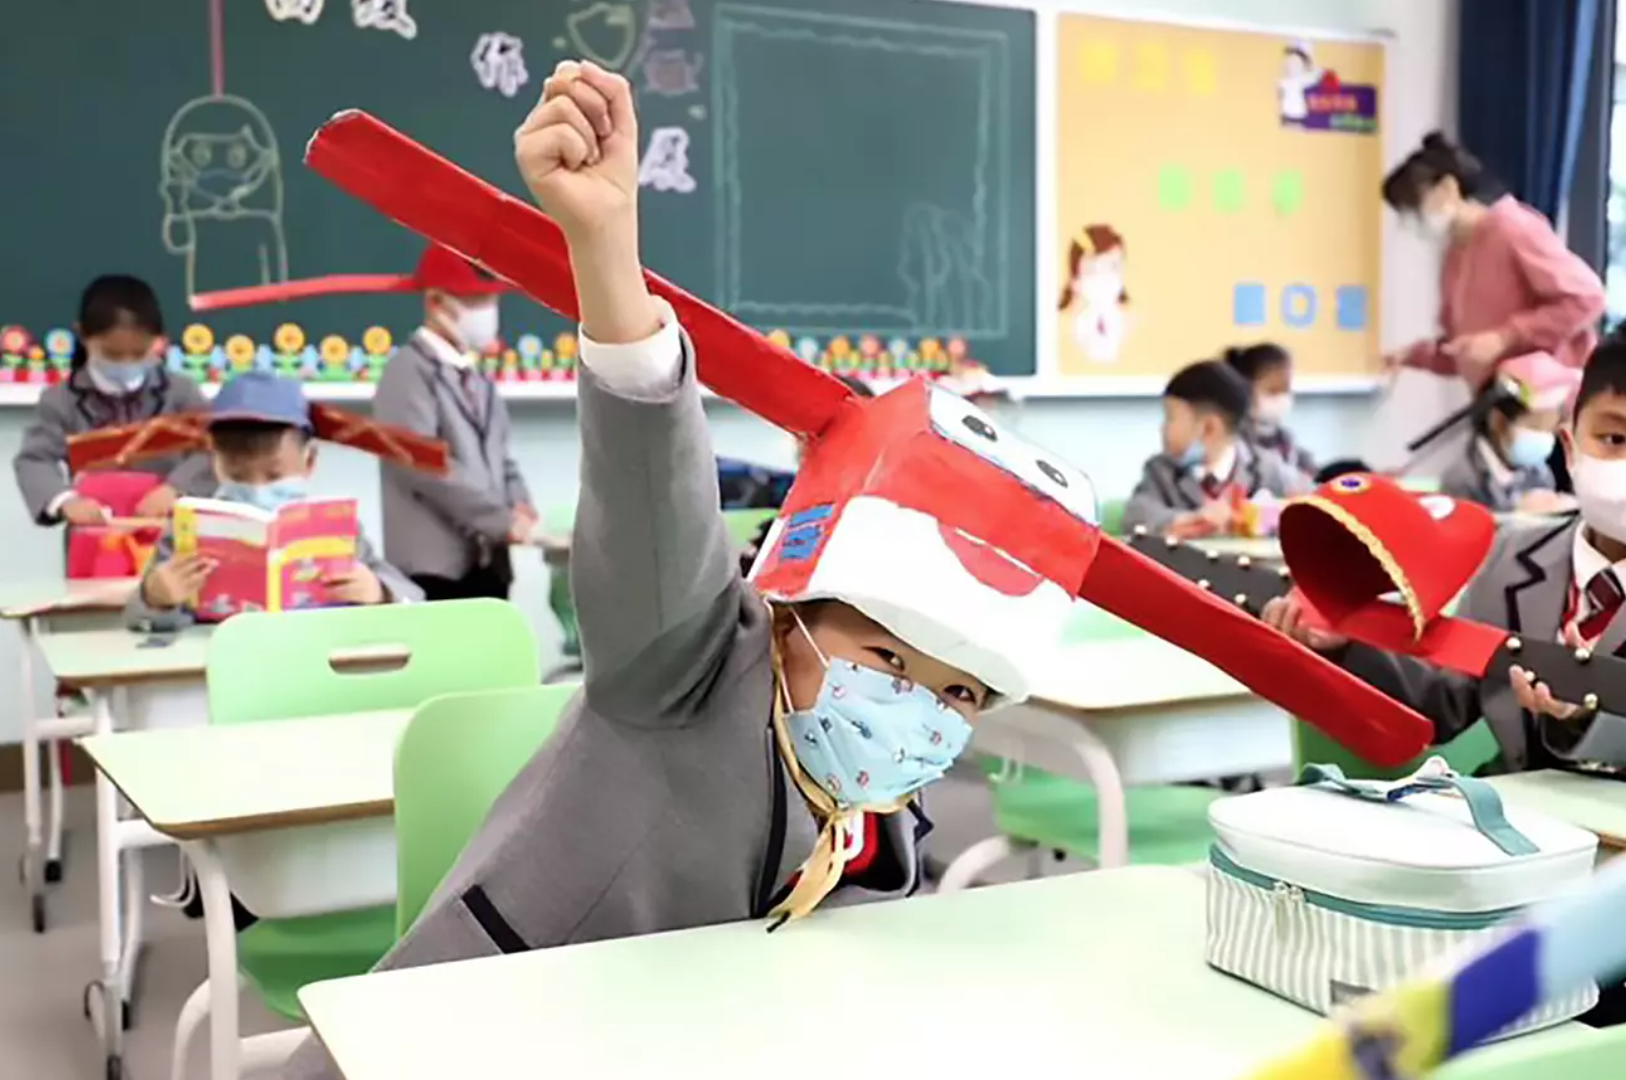 Schools in China adopted a novel method to ensure social distancing among pupils